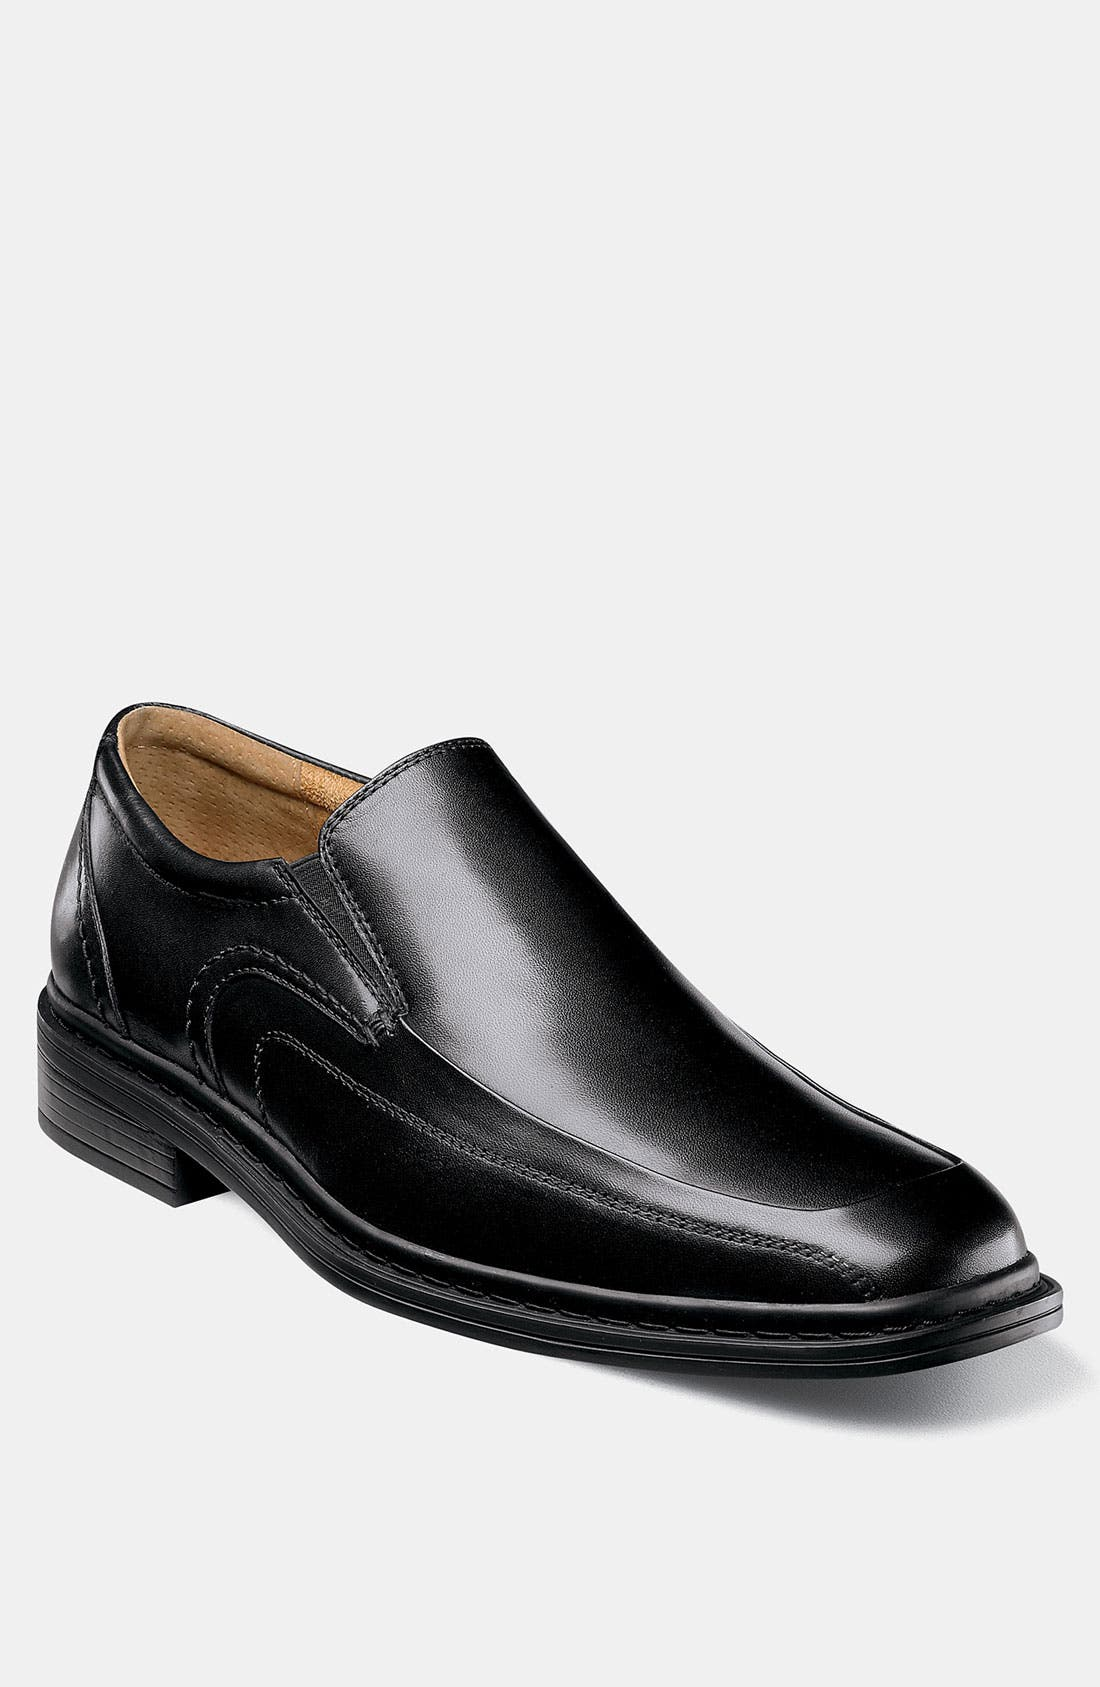 Alternate Image 1 Selected - Florsheim 'Welter' Venetian Loafer